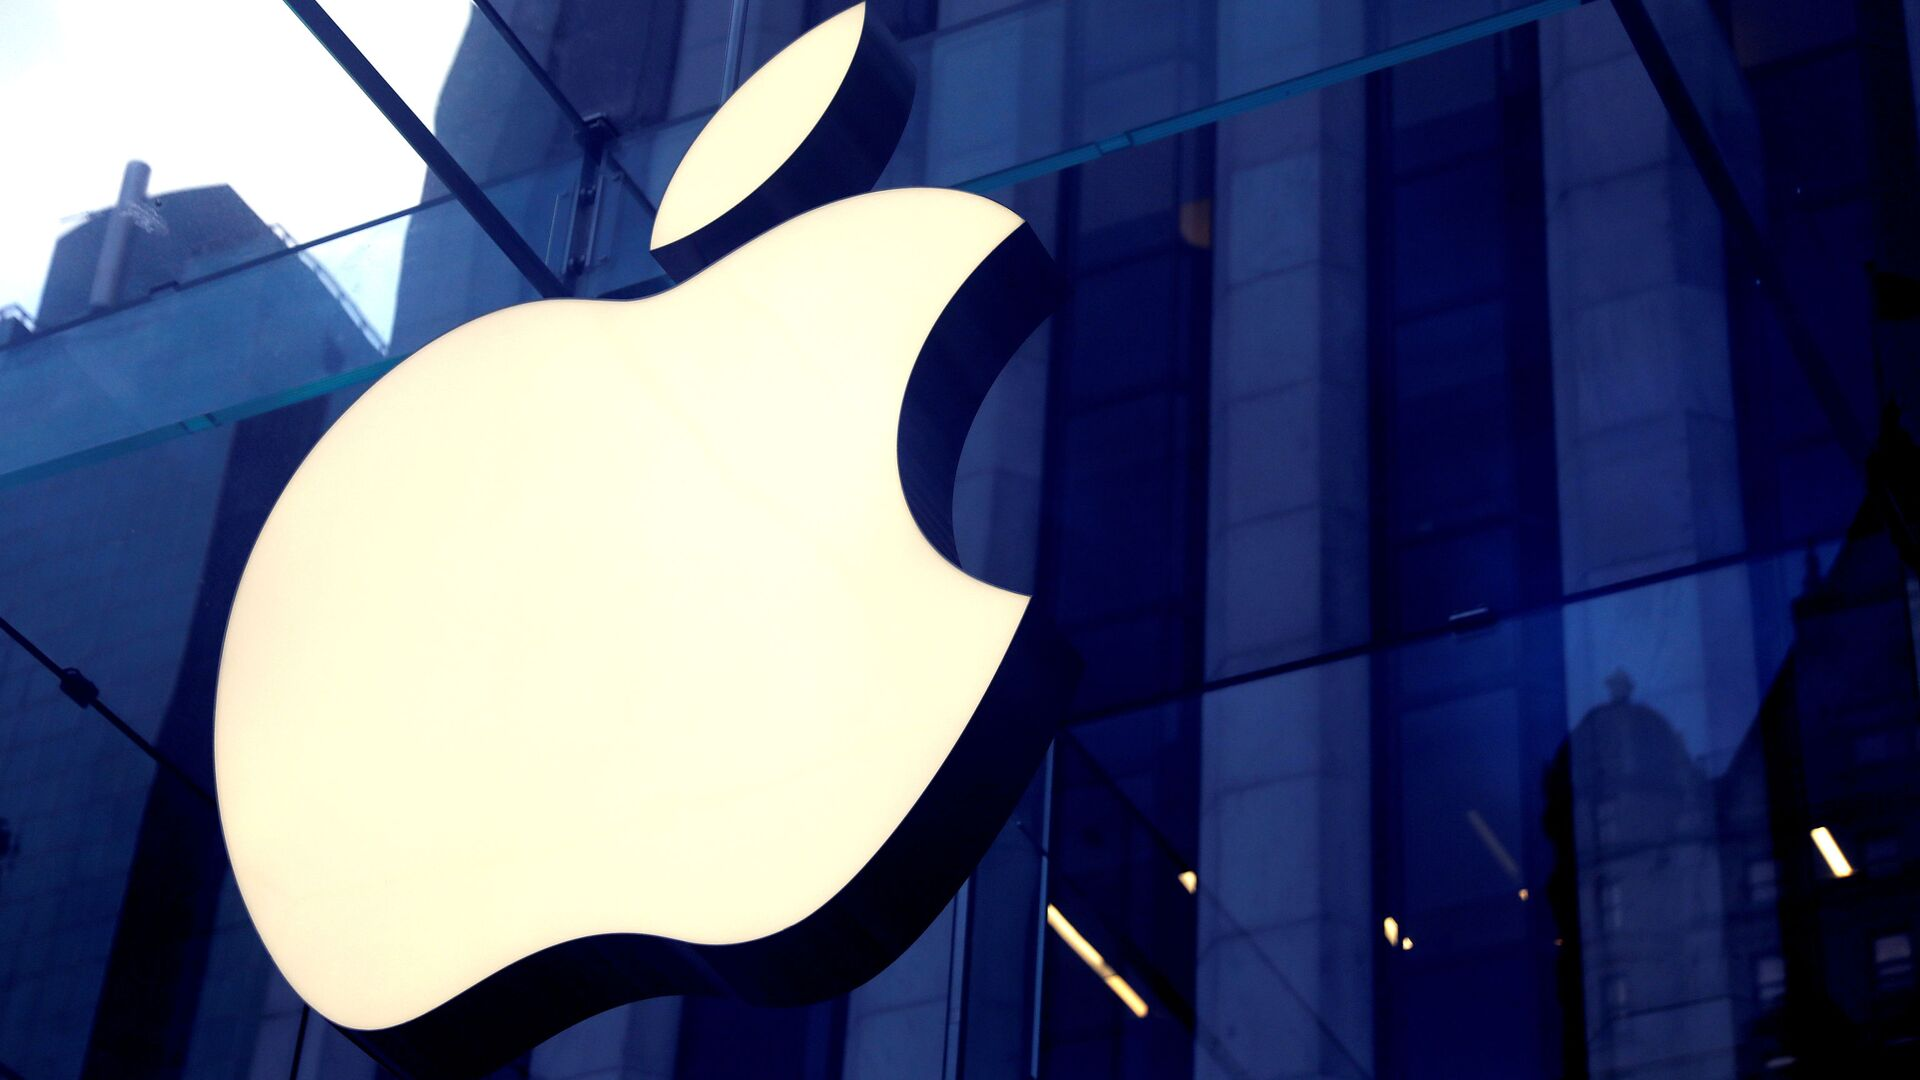 The Apple Inc logo is seen hanging at the entrance to the Apple store on 5th Avenue in Manhattan, New York, U.S., October 16, 2019. - Sputnik International, 1920, 01.08.2021